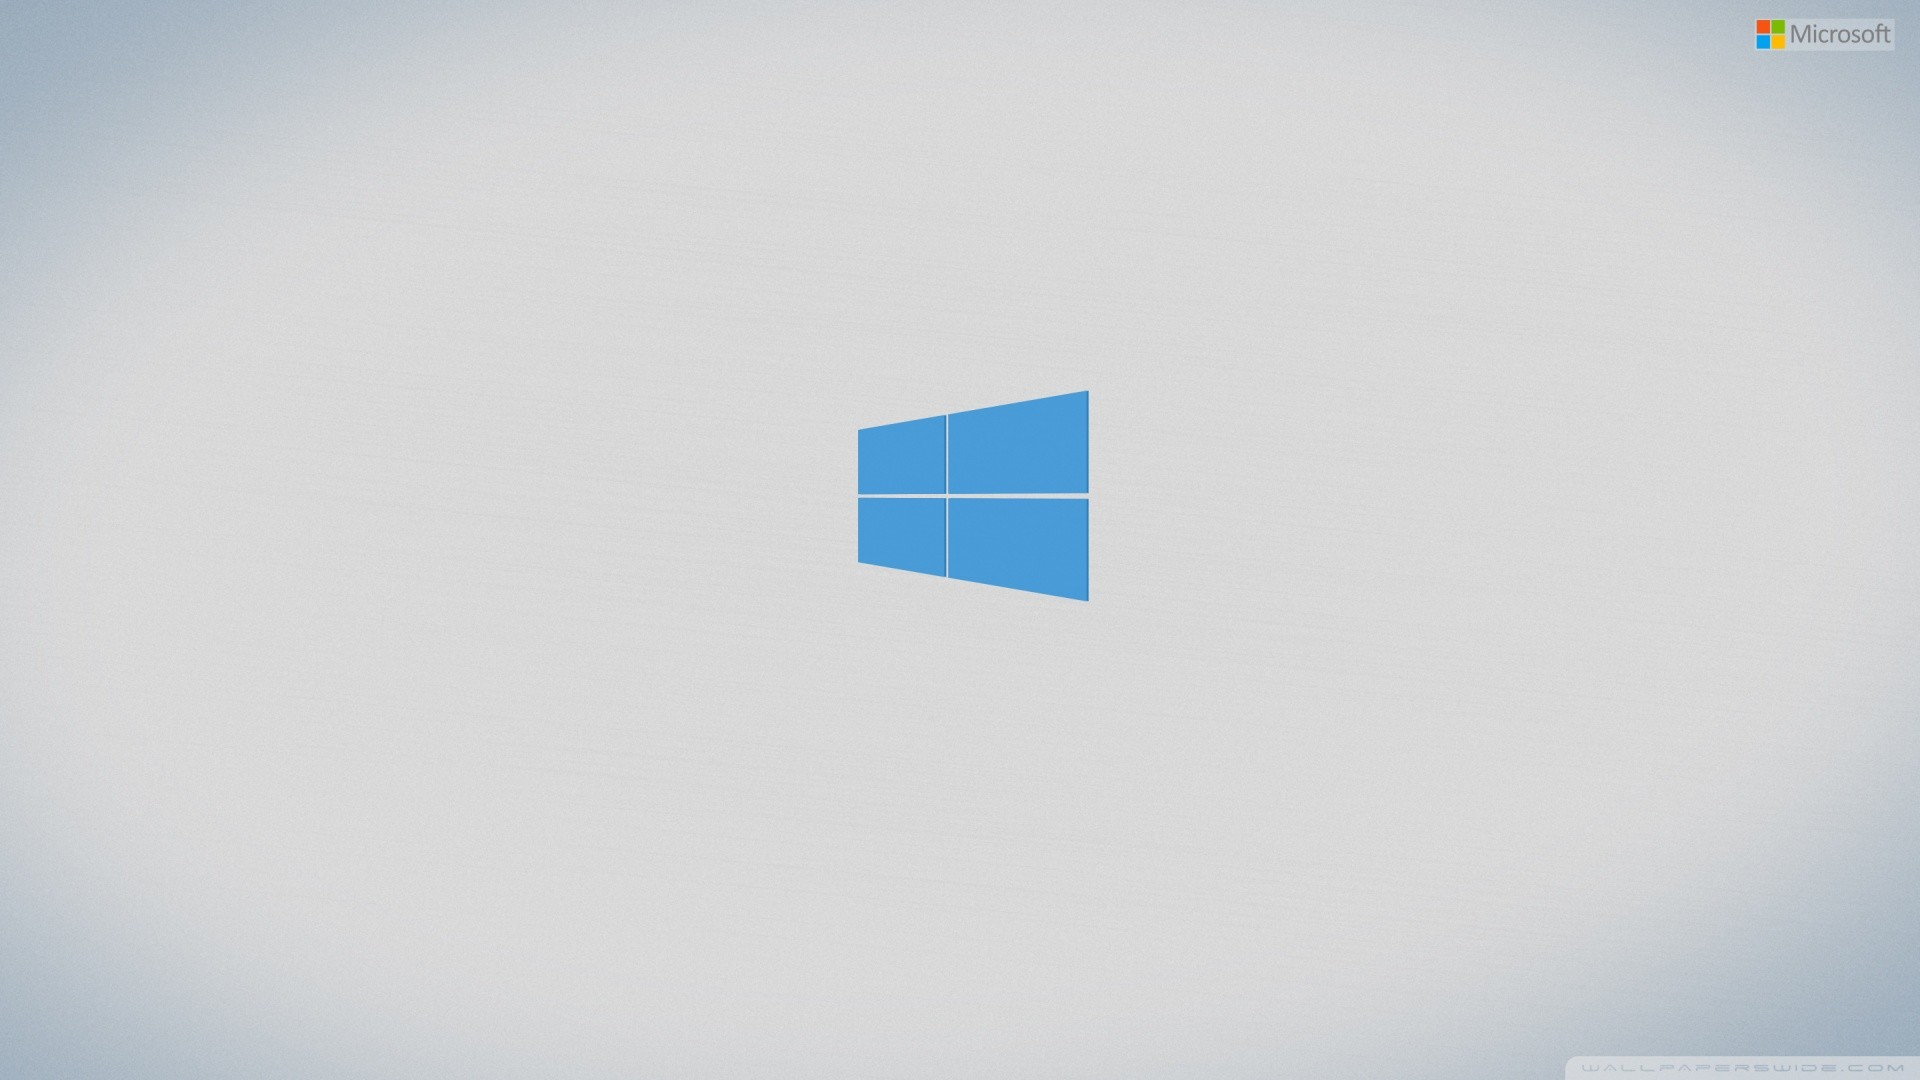 Windows 7 Ultimate Theme Wallpaper